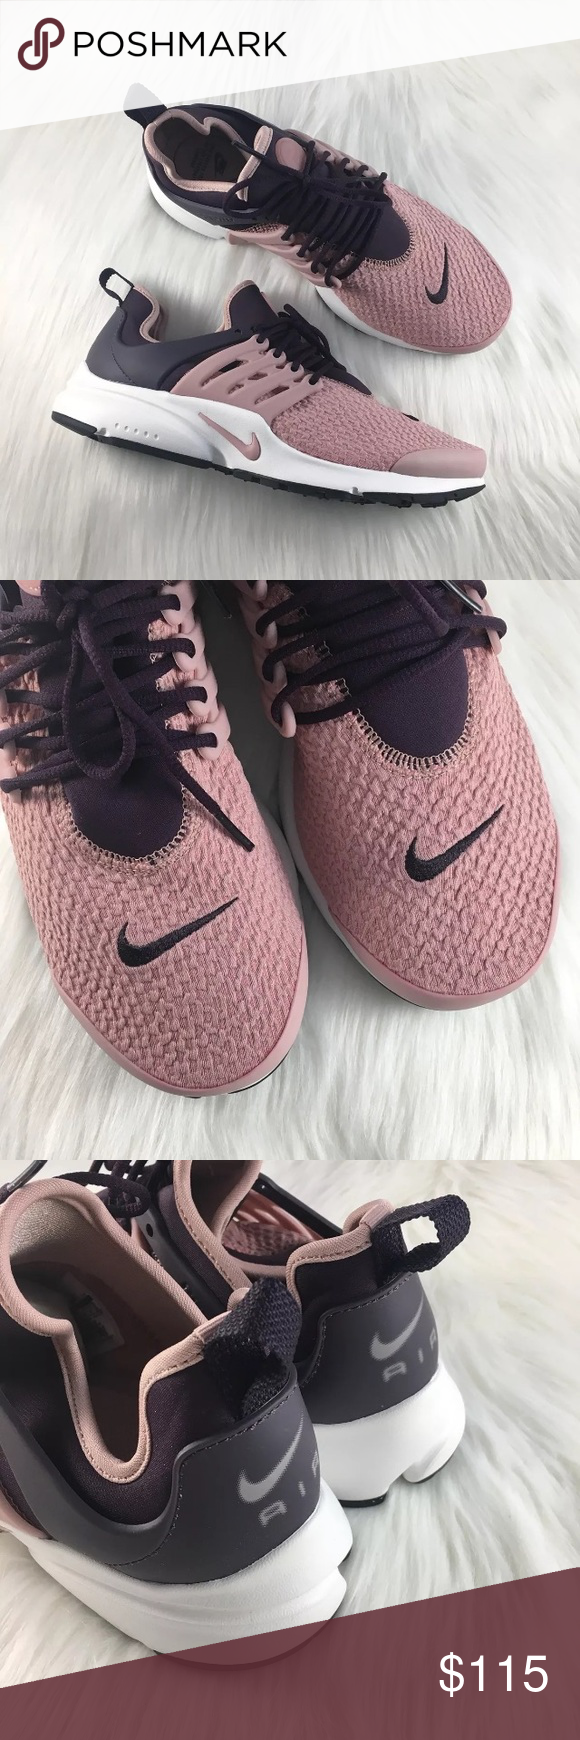 uk availability d81dd 7008b Women s Nike Air Presto Port Wine Particle Pink Women s Nike Air Presto  Port Wine Particle Pink Sneakers deliver unrivaled fit and comfort.